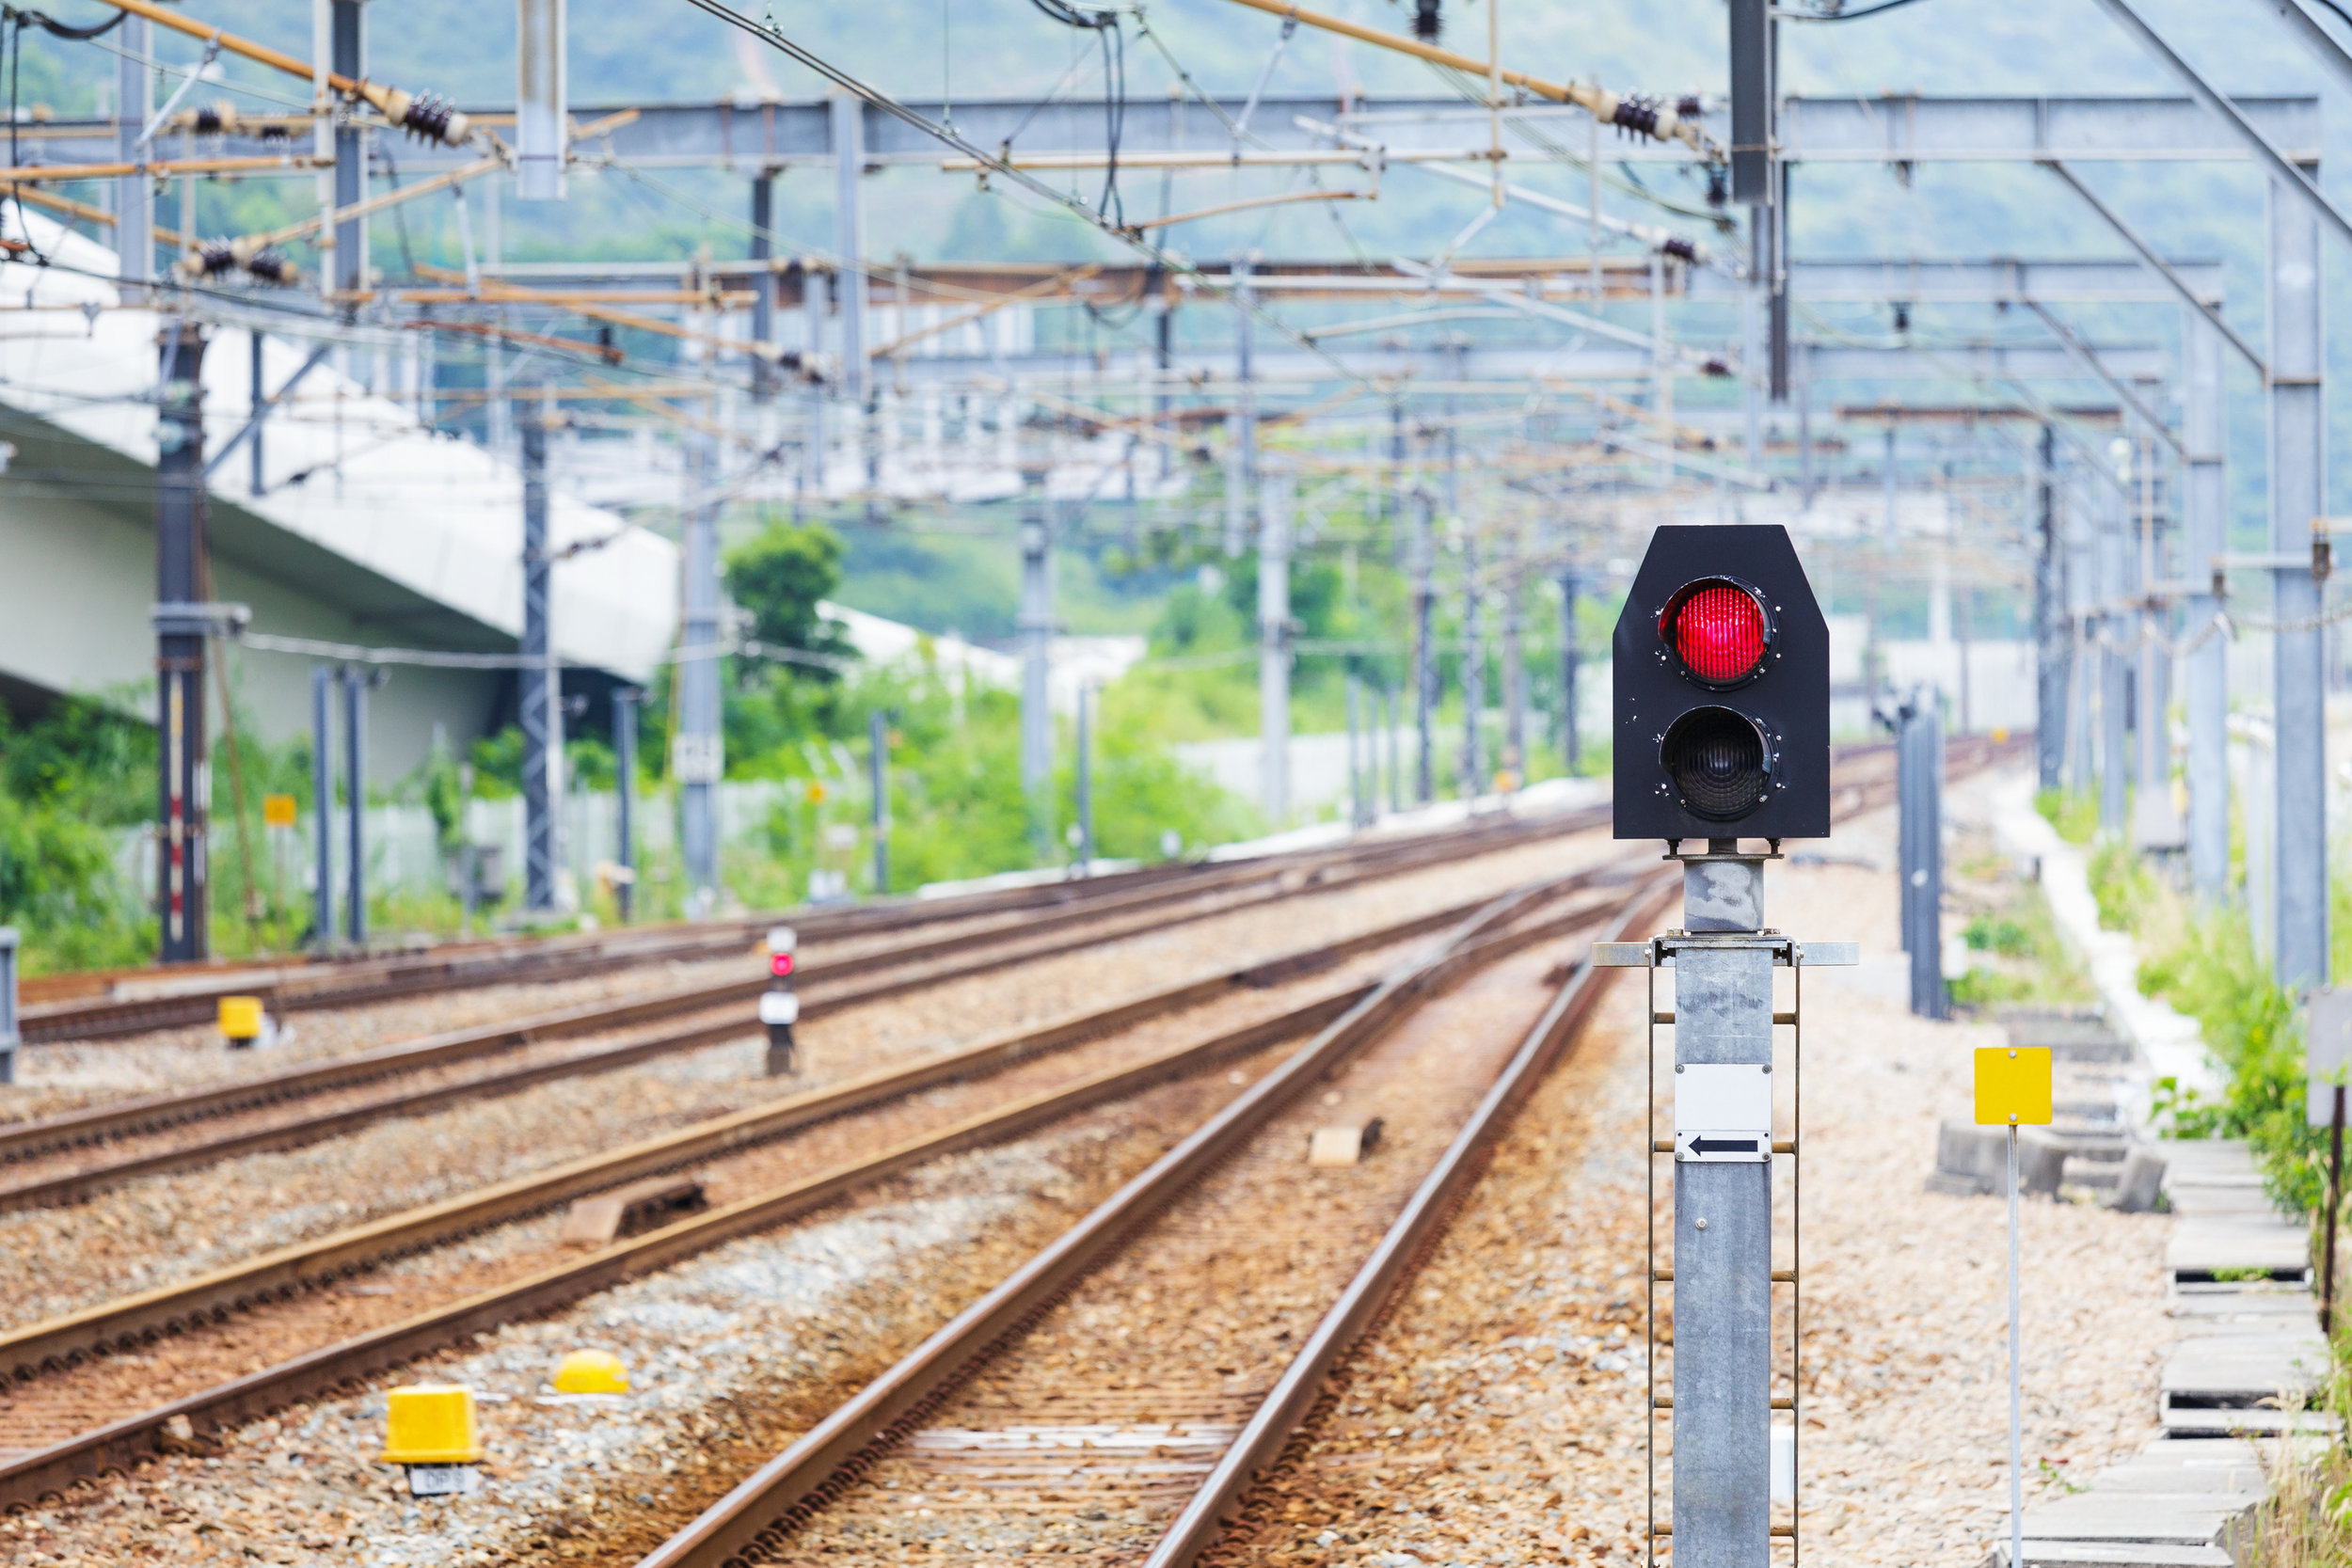 photodune-5644385-train-railway-signal-light-l.jpg